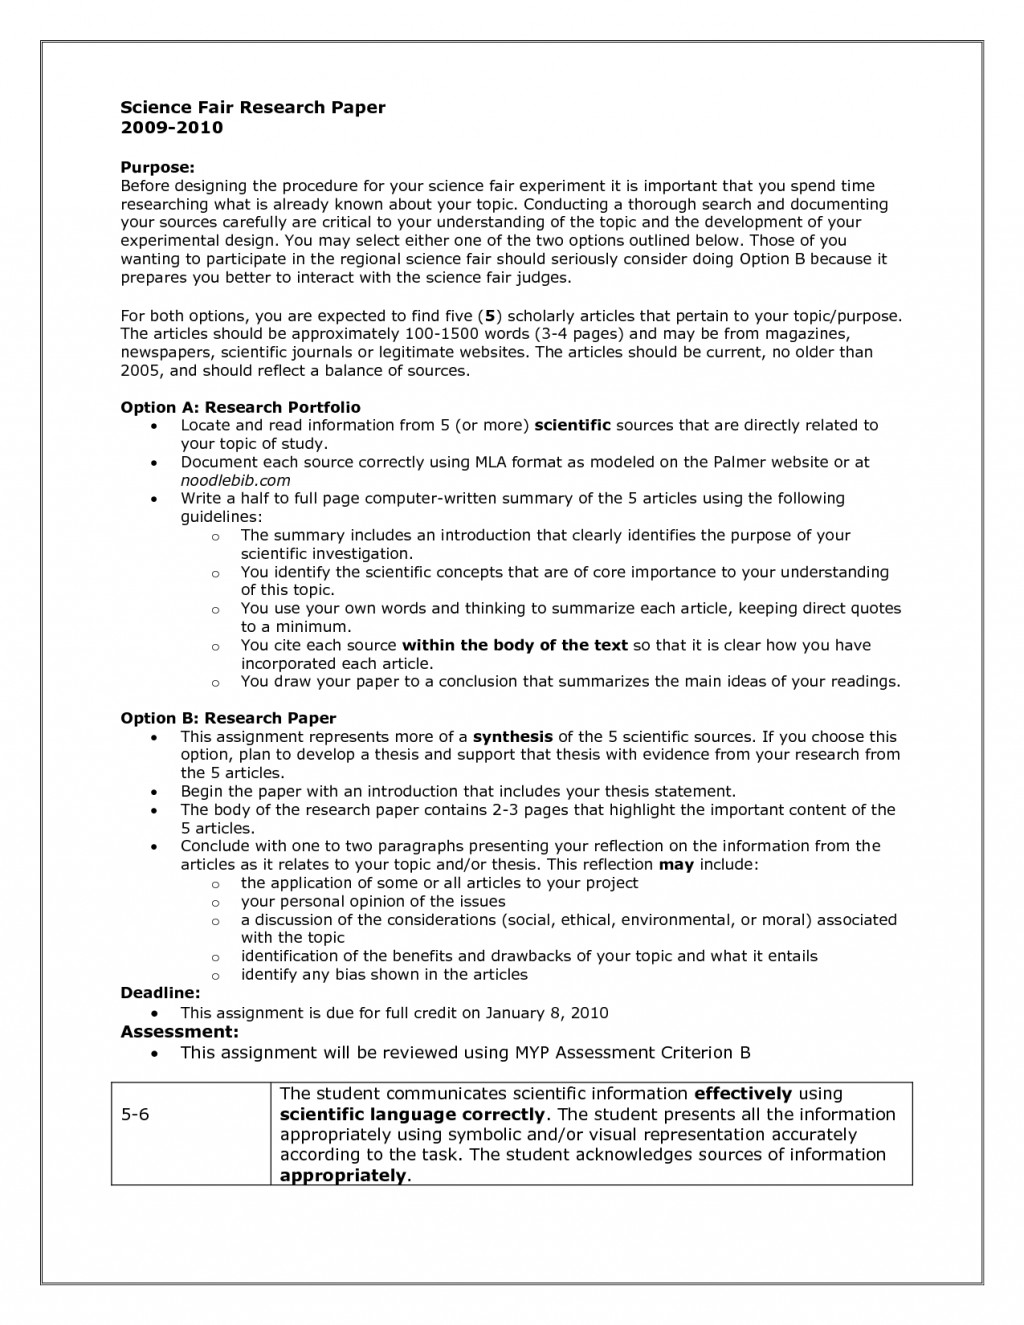 025 Best Photos Of Science Procedure Template Fair Essay Example L Research Paper Fearsome Websites Top Writing Large